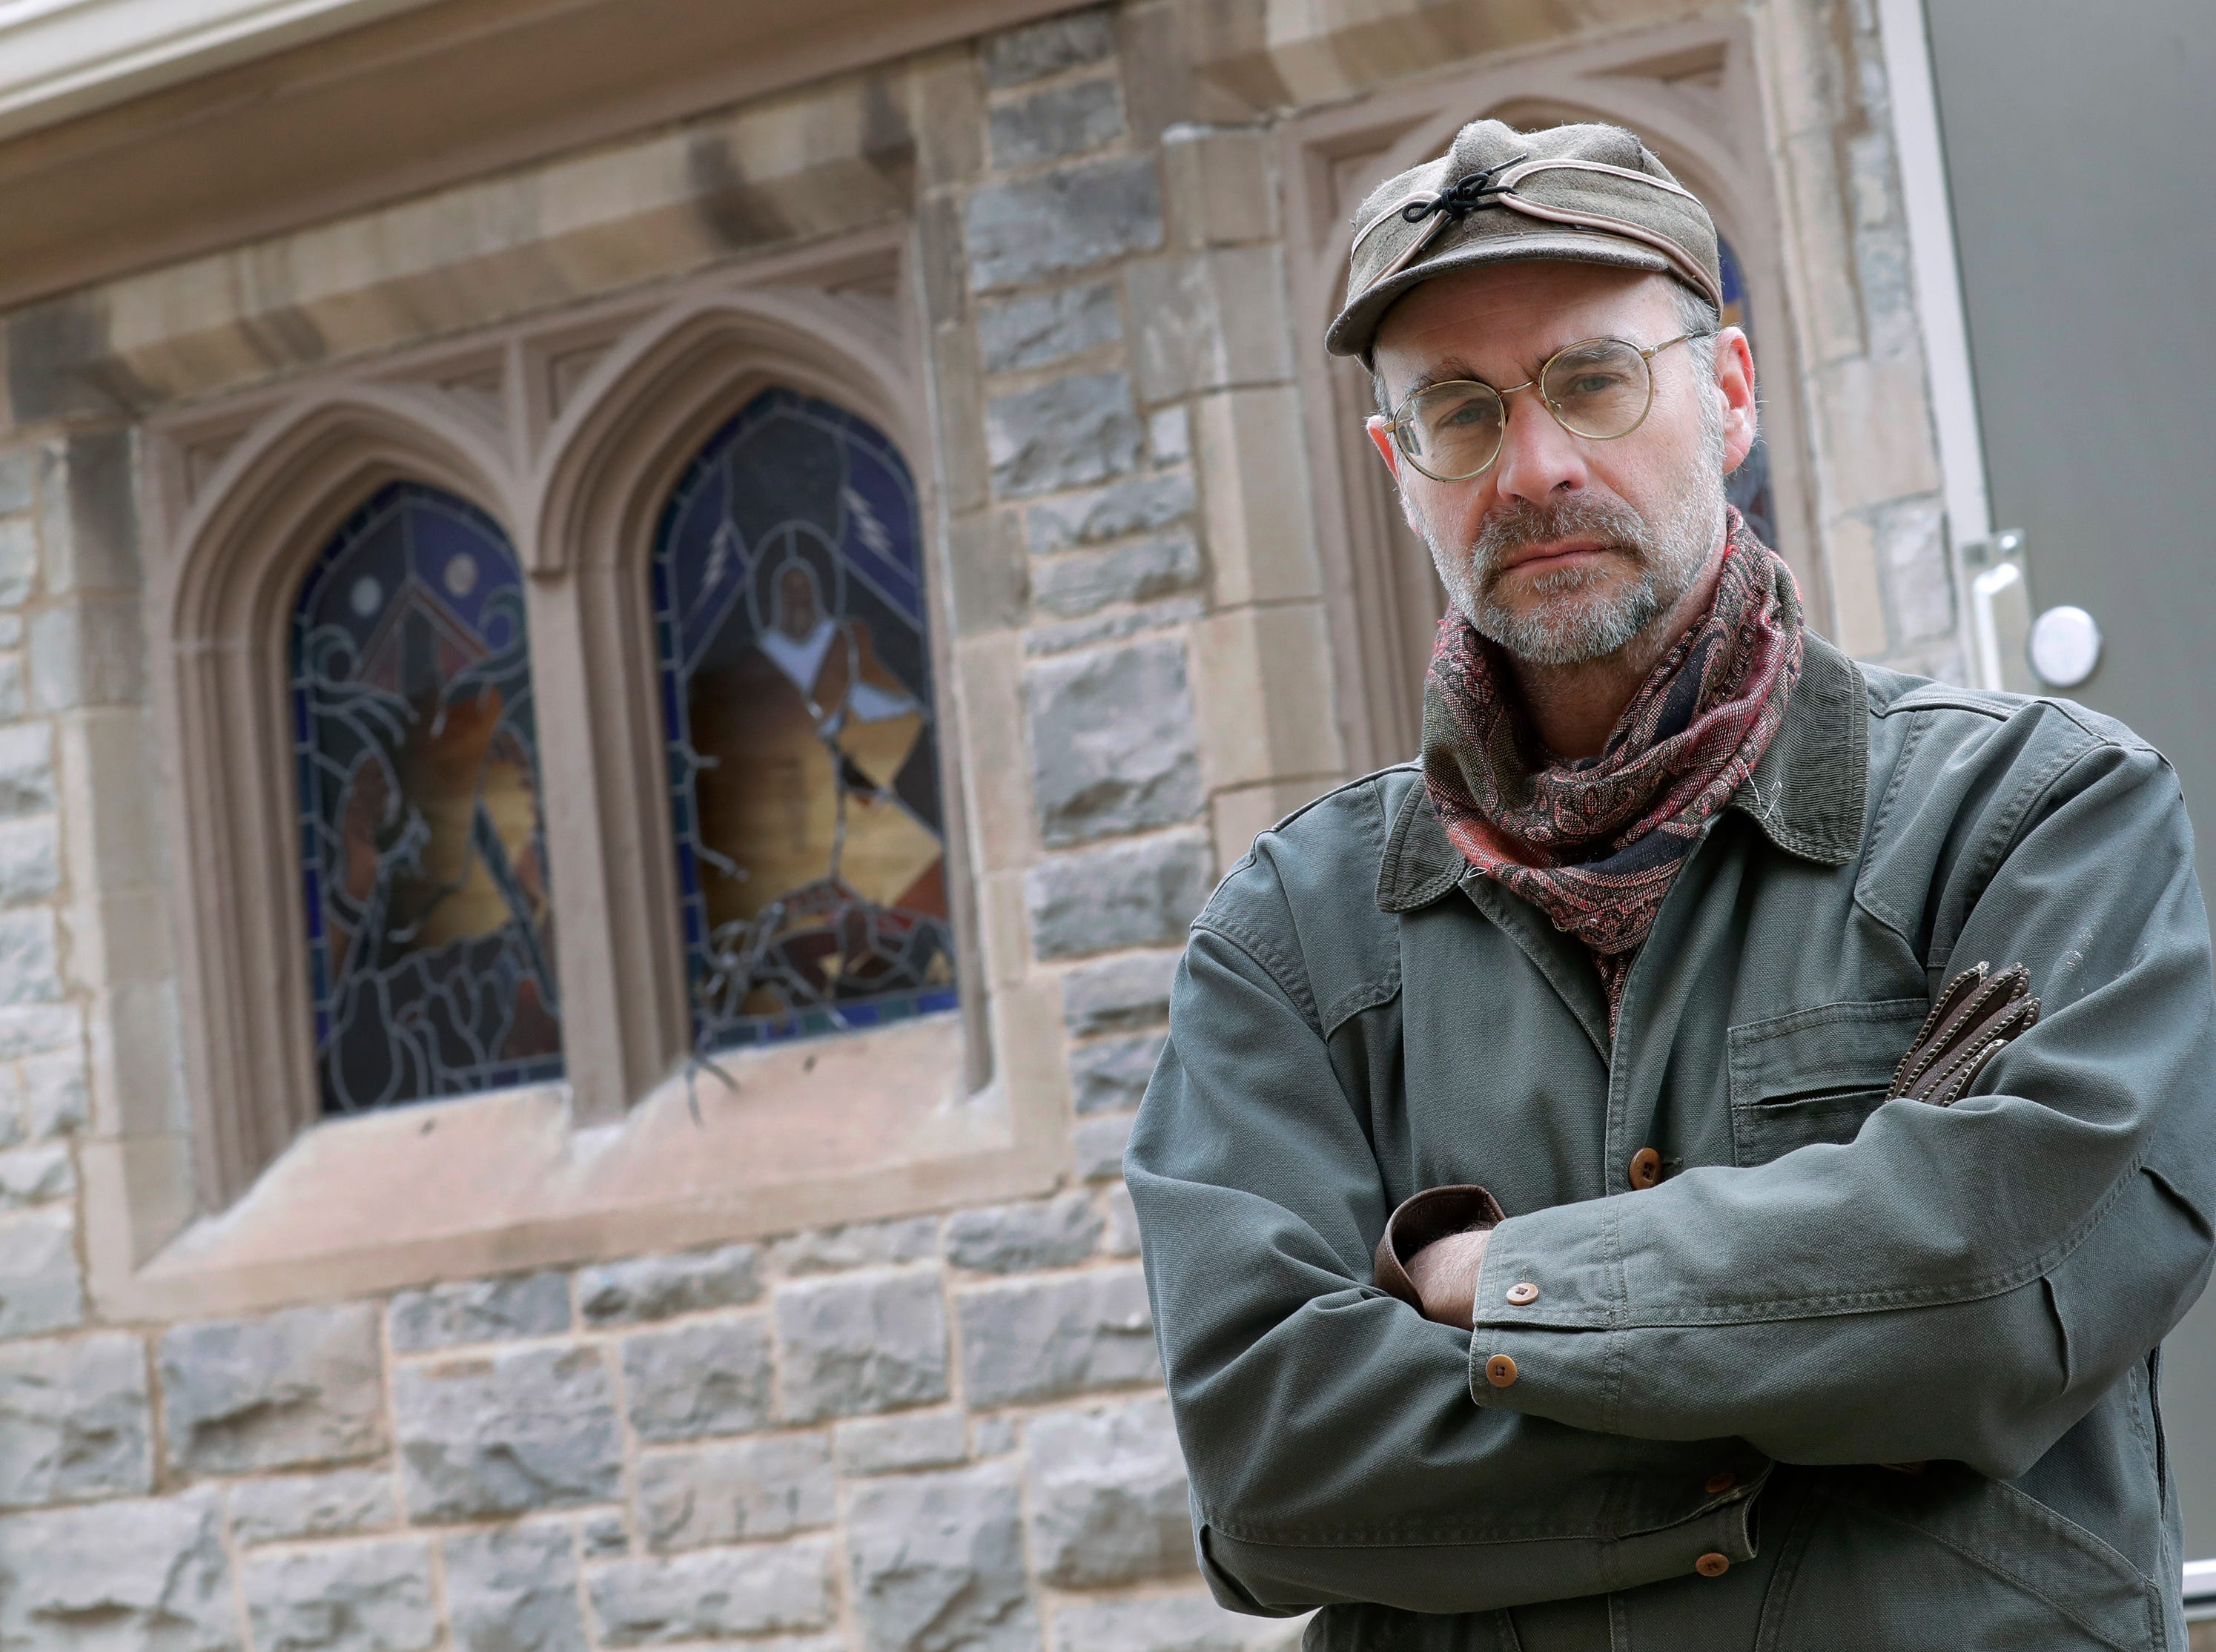 Senior warden Rob Anderson stands in front of vandalized stained glass windows Wednesday, March 20, 2019, at All Saints Episcopal Church in Appleton, Wis. Dan Powers/USA TODAY NETWORK-Wisconsin